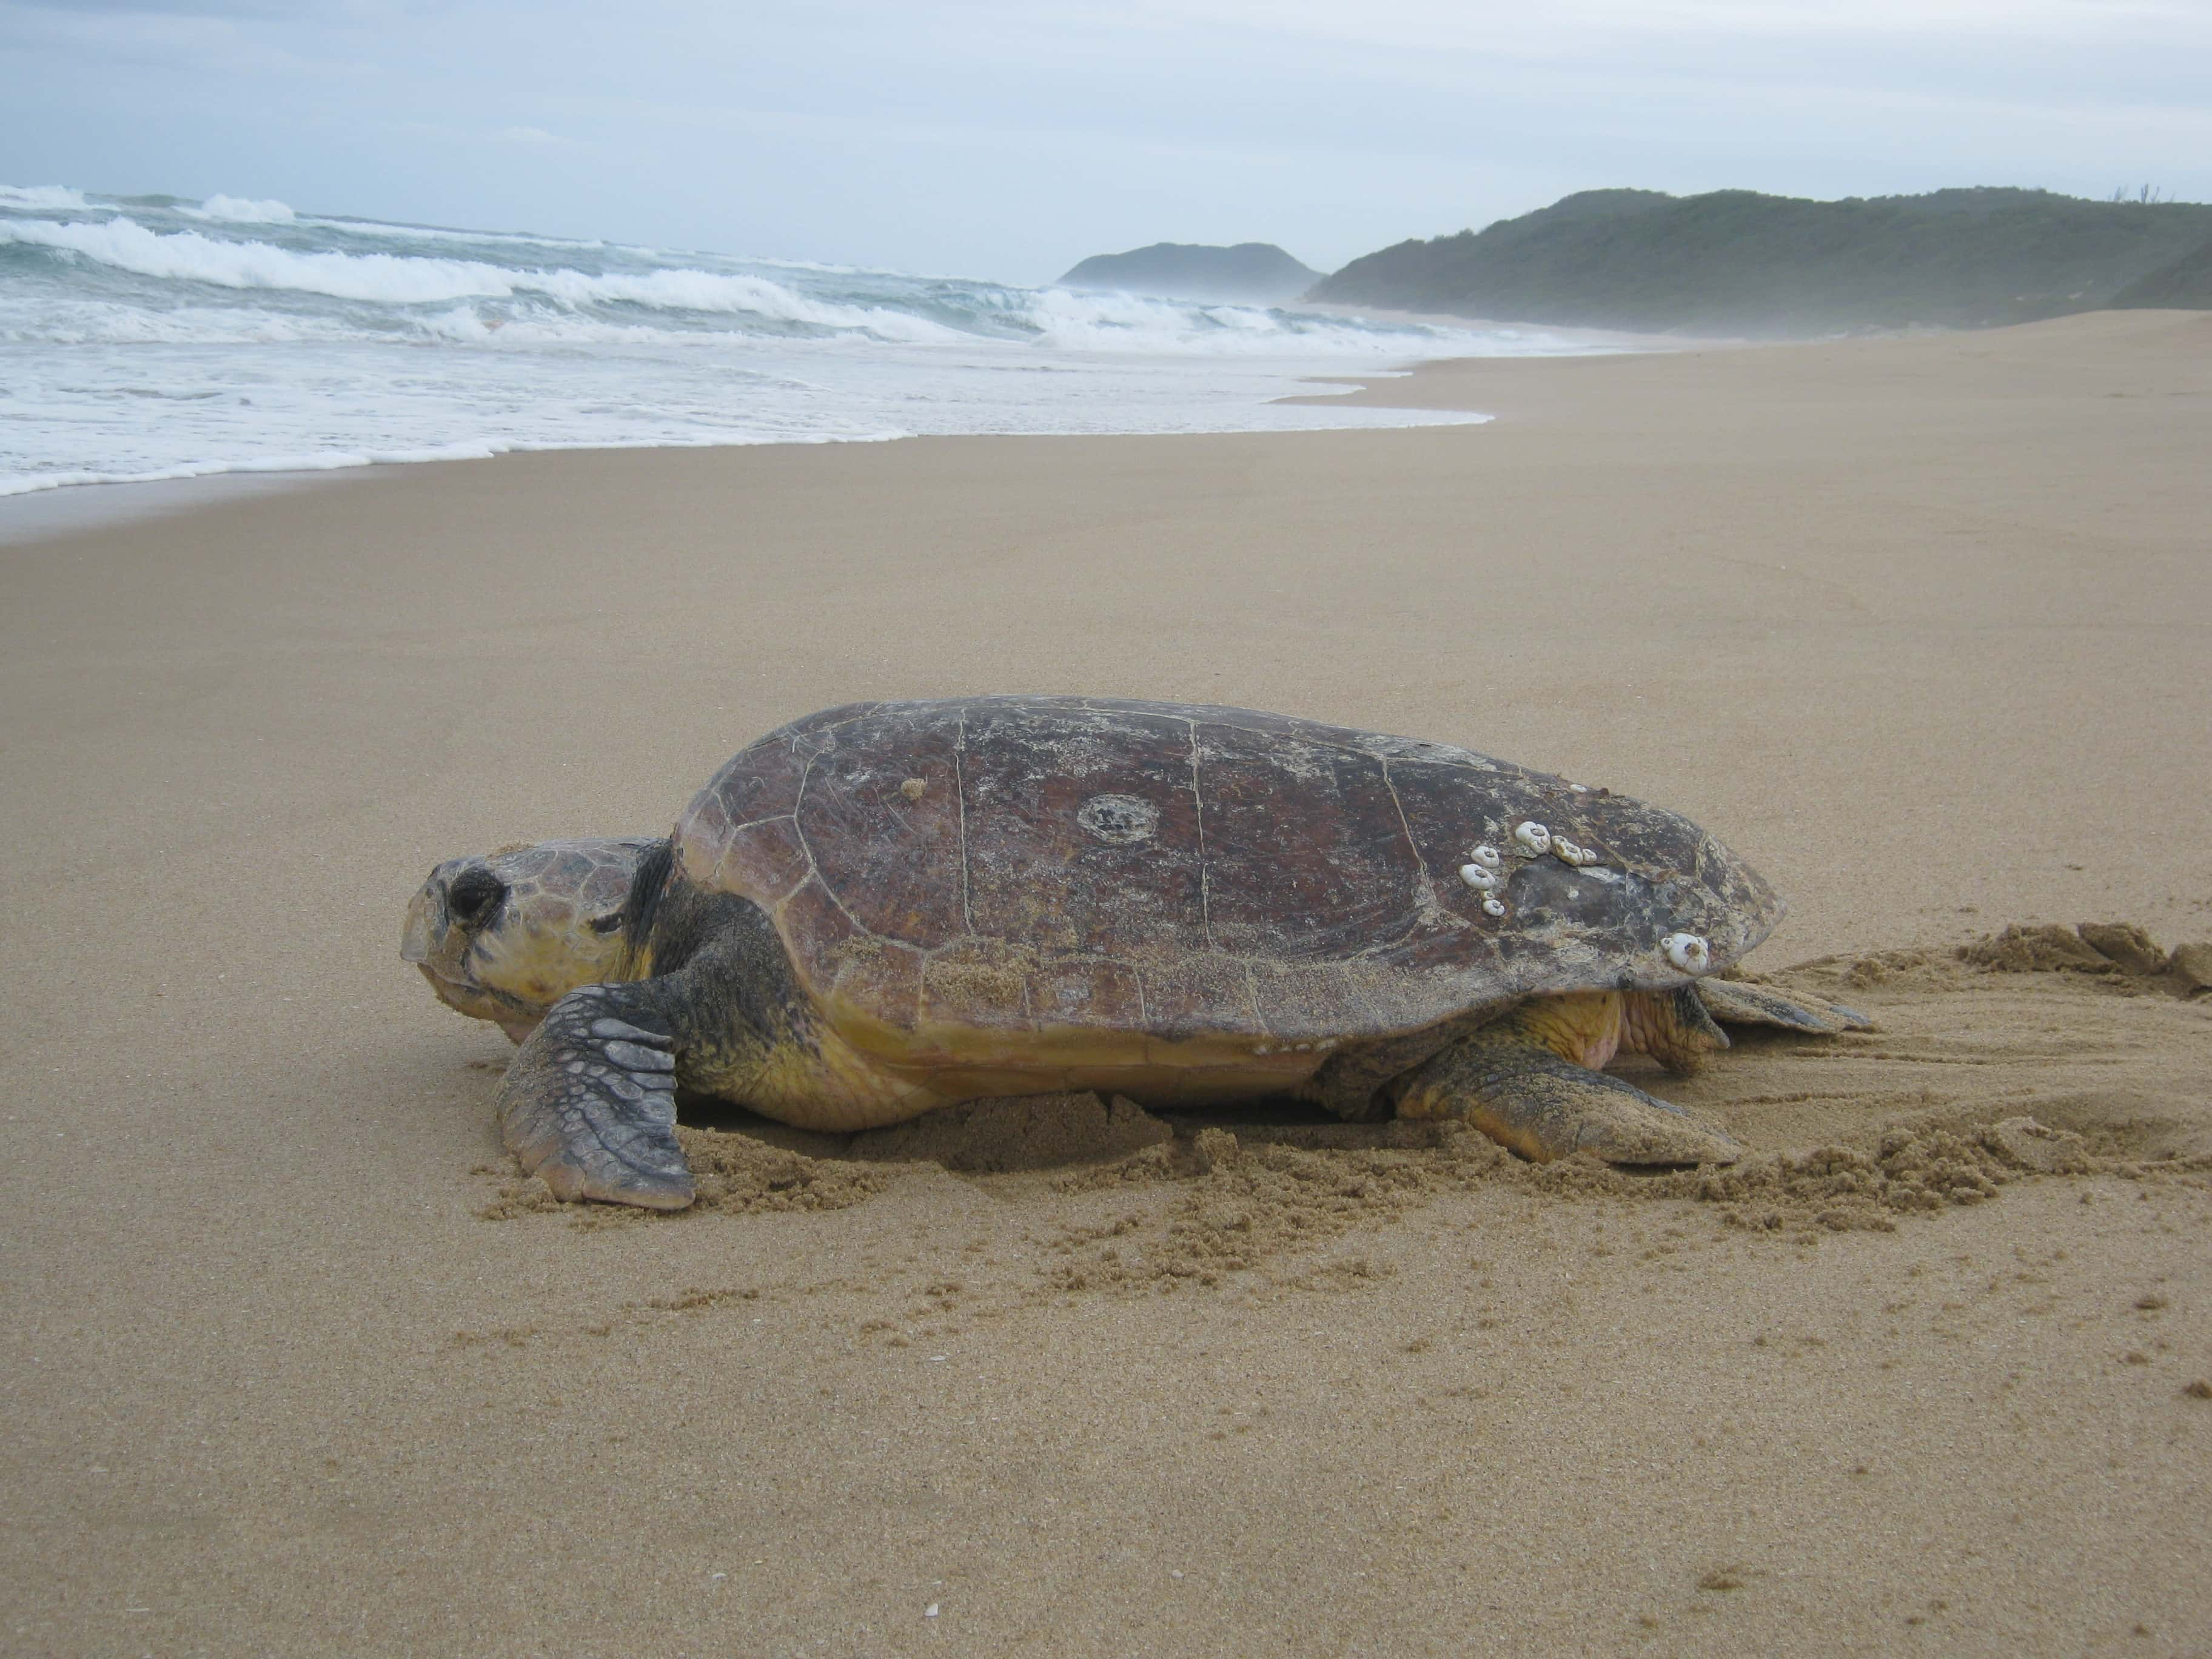 Tracking Turtles One Of The Most Moving Wildlife Encounters